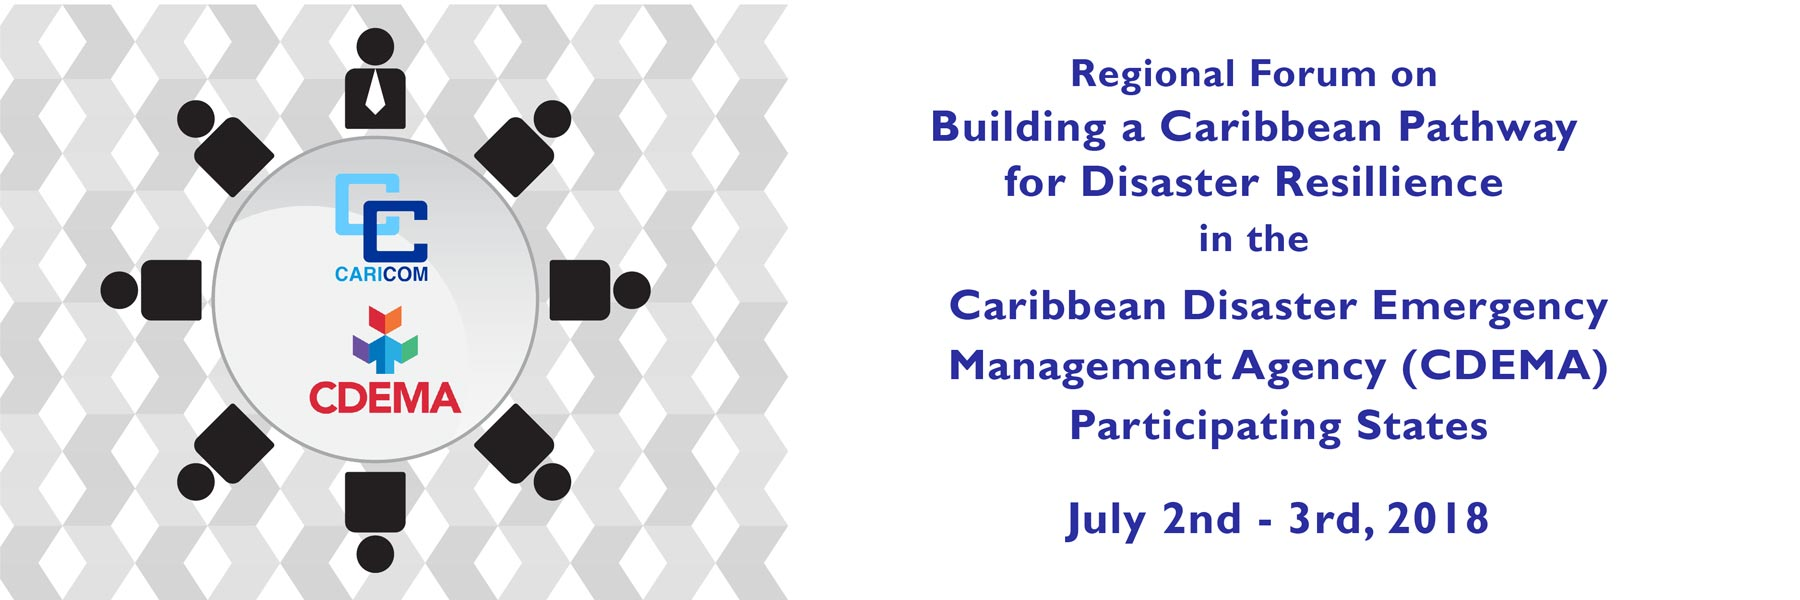 Regional Forum on Building a Caribbean Pathway for Disaster Resilience in the CDEMA PS